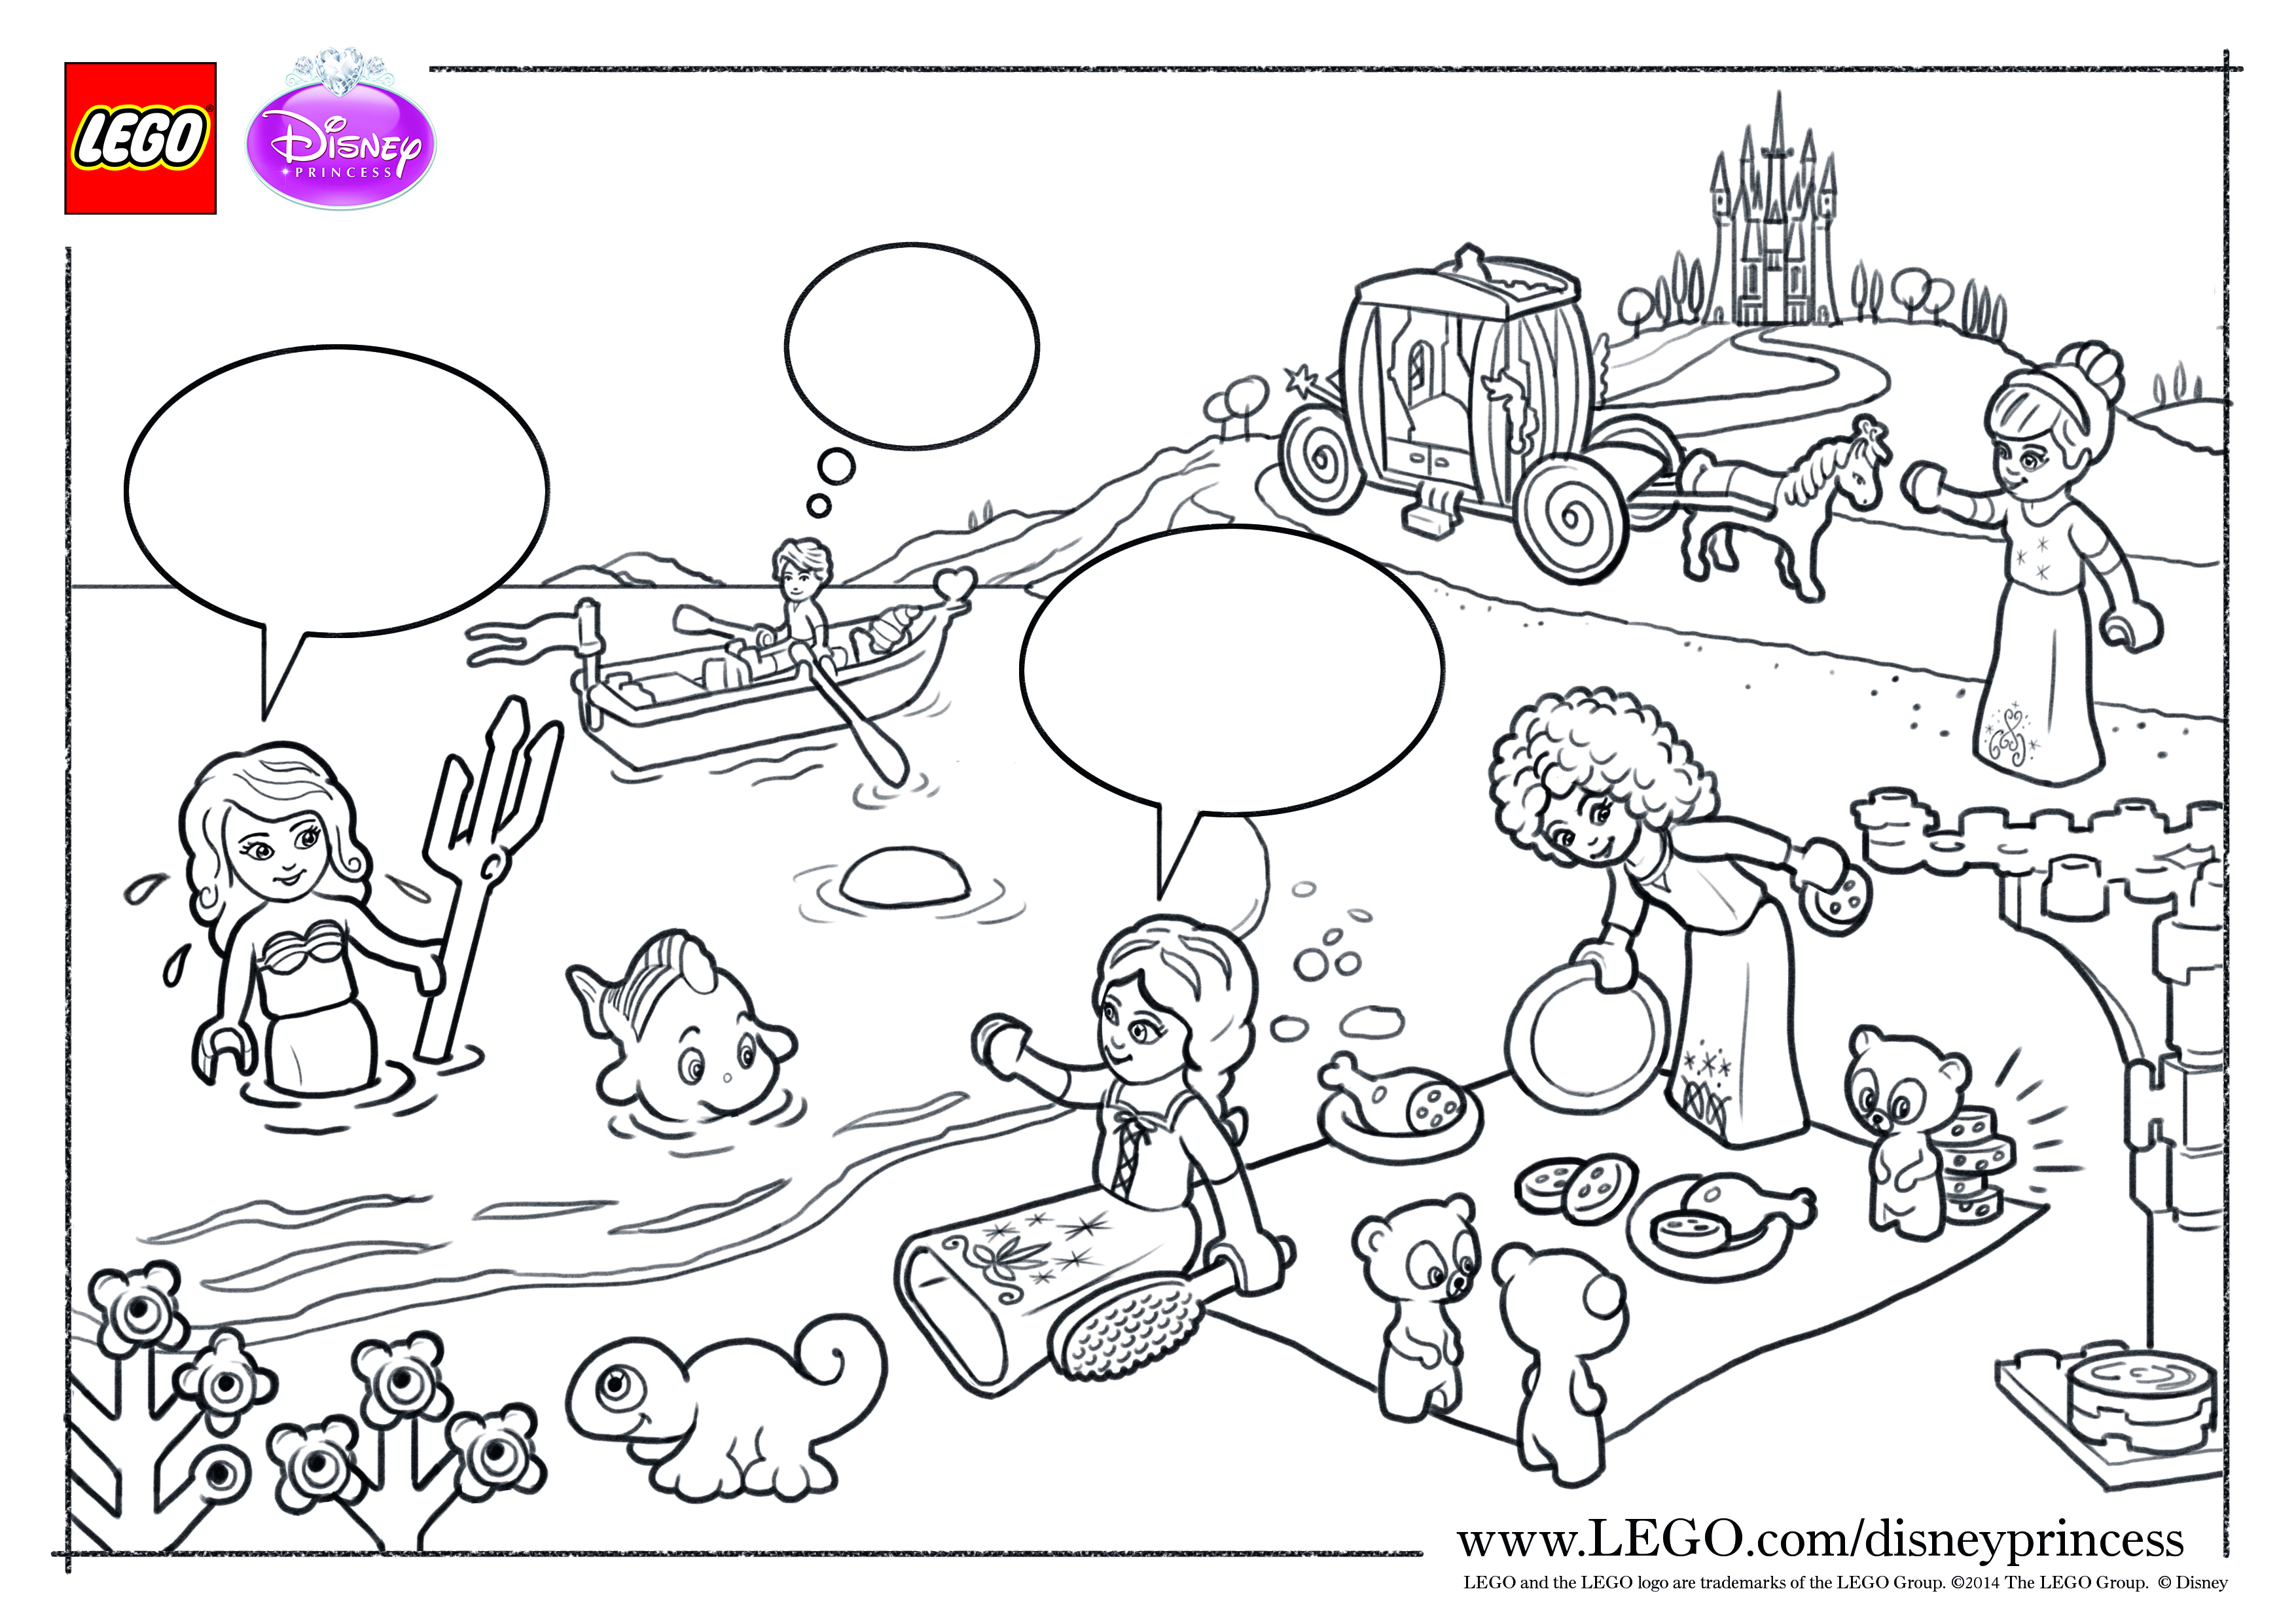 Lego Friends Printable Coloring Pages Lego Friends Coloring Pages Printable Free